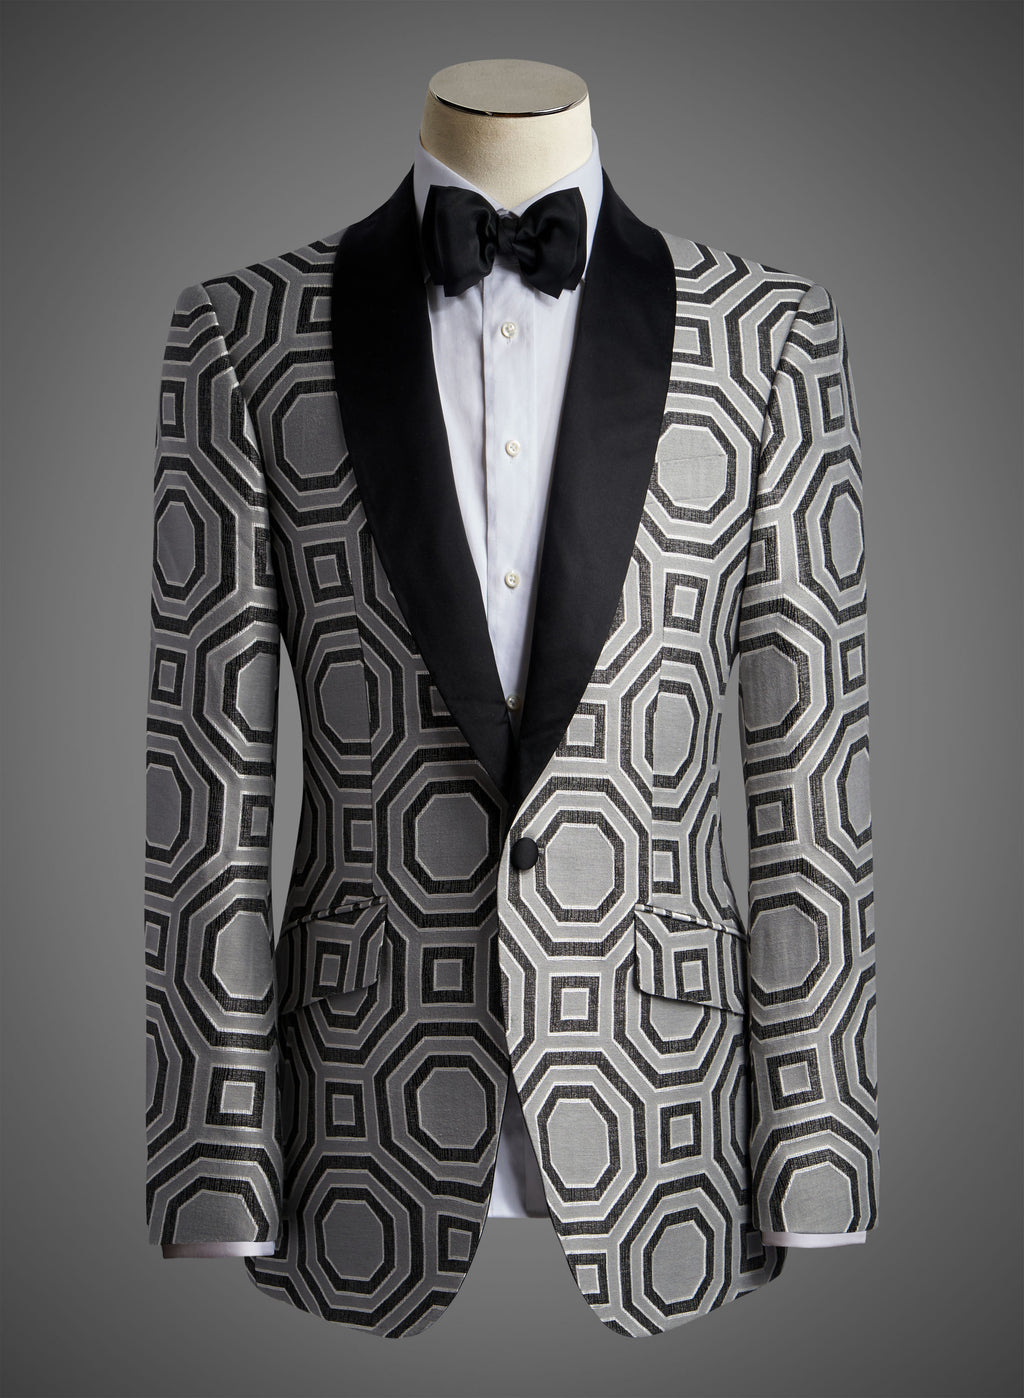 BW SIGNATURE JACKET - Charcoal Satin Shawl Lapel (SINFONIA-F)